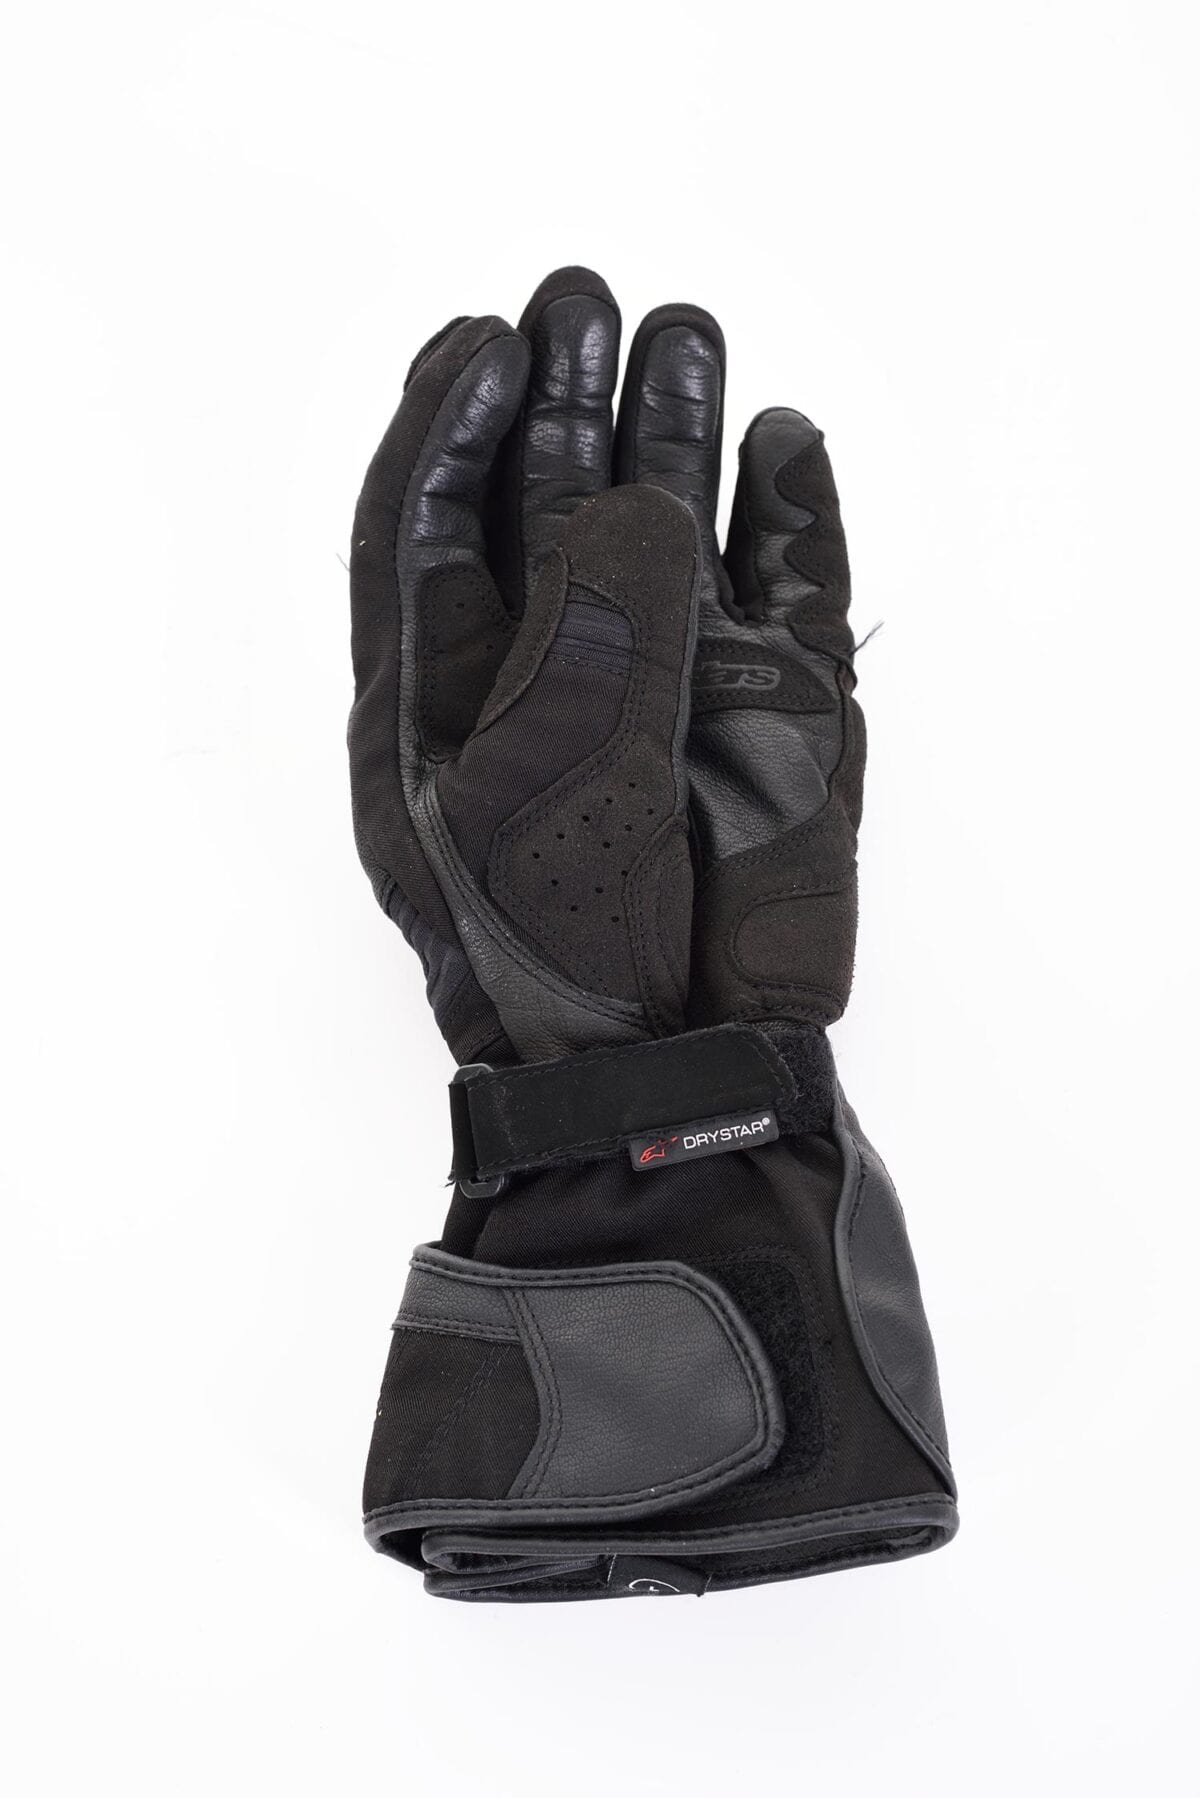 107_Alpinestars-Drystar-gloves_004